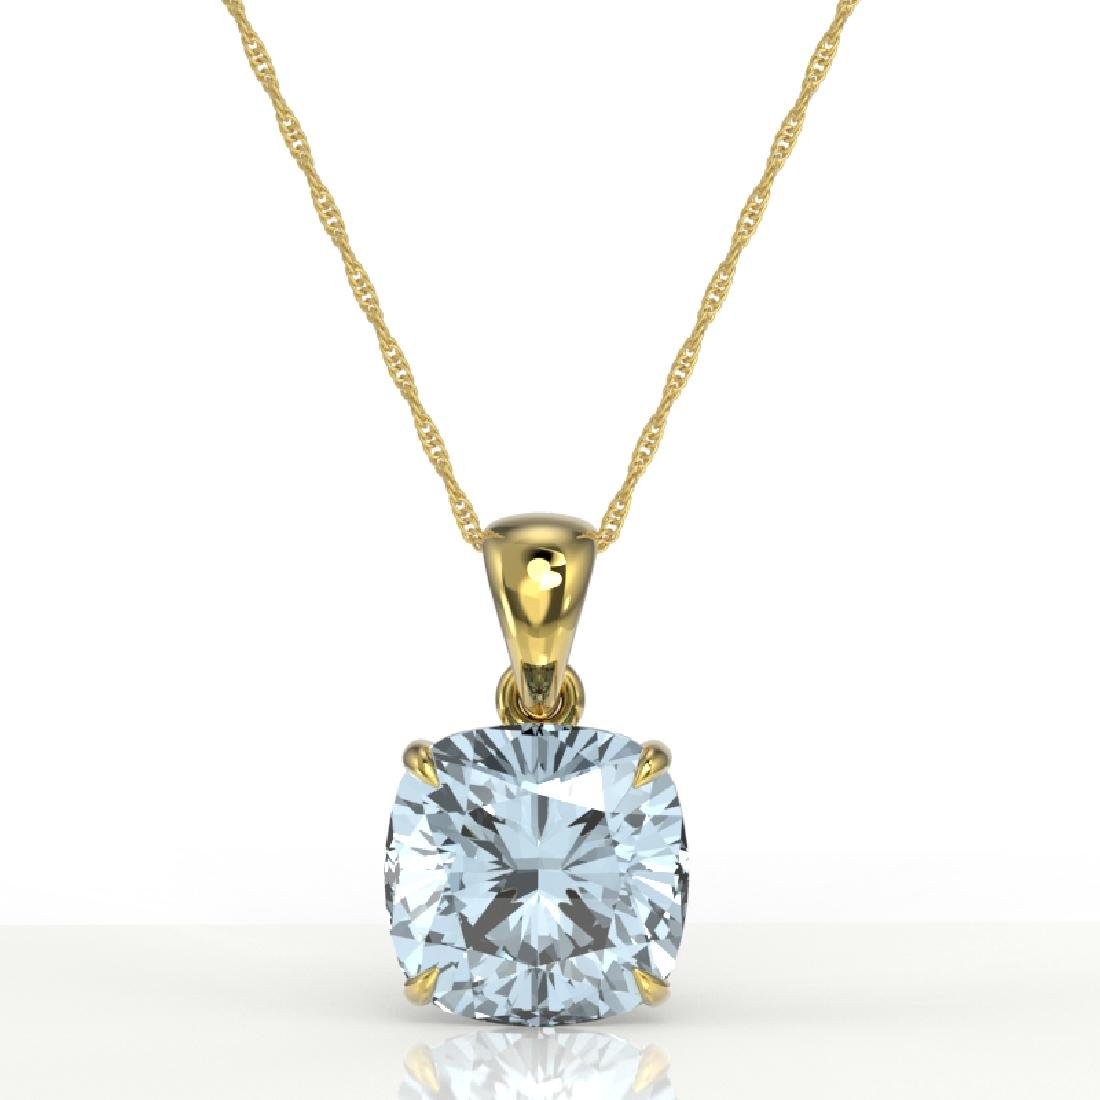 6 Cushion Cut Sky Blue Topaz Solitaire Necklace 18K - 2